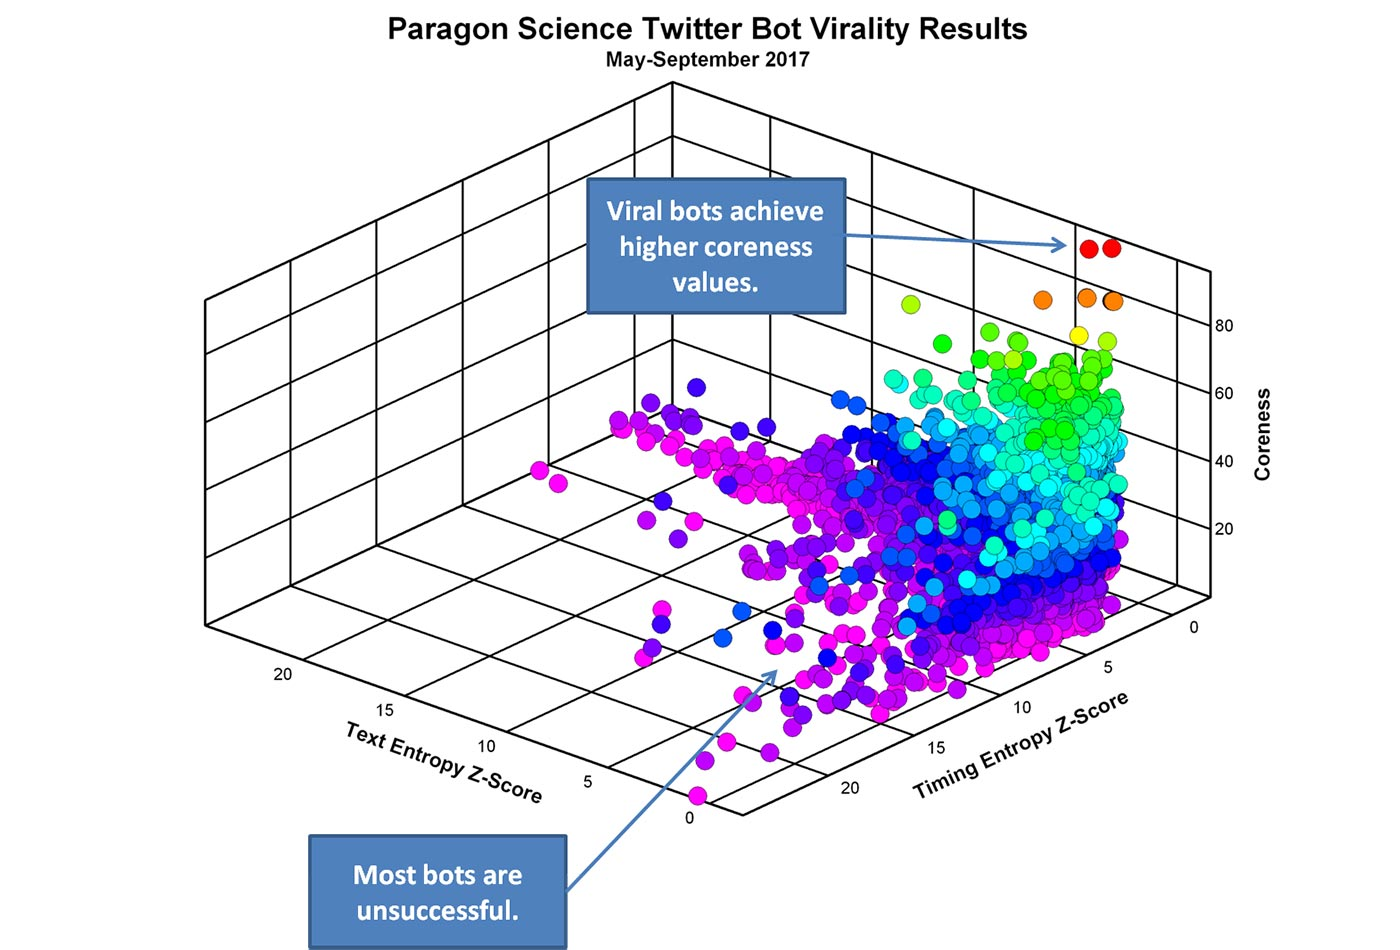 Paragon Science Twitter bot virality results